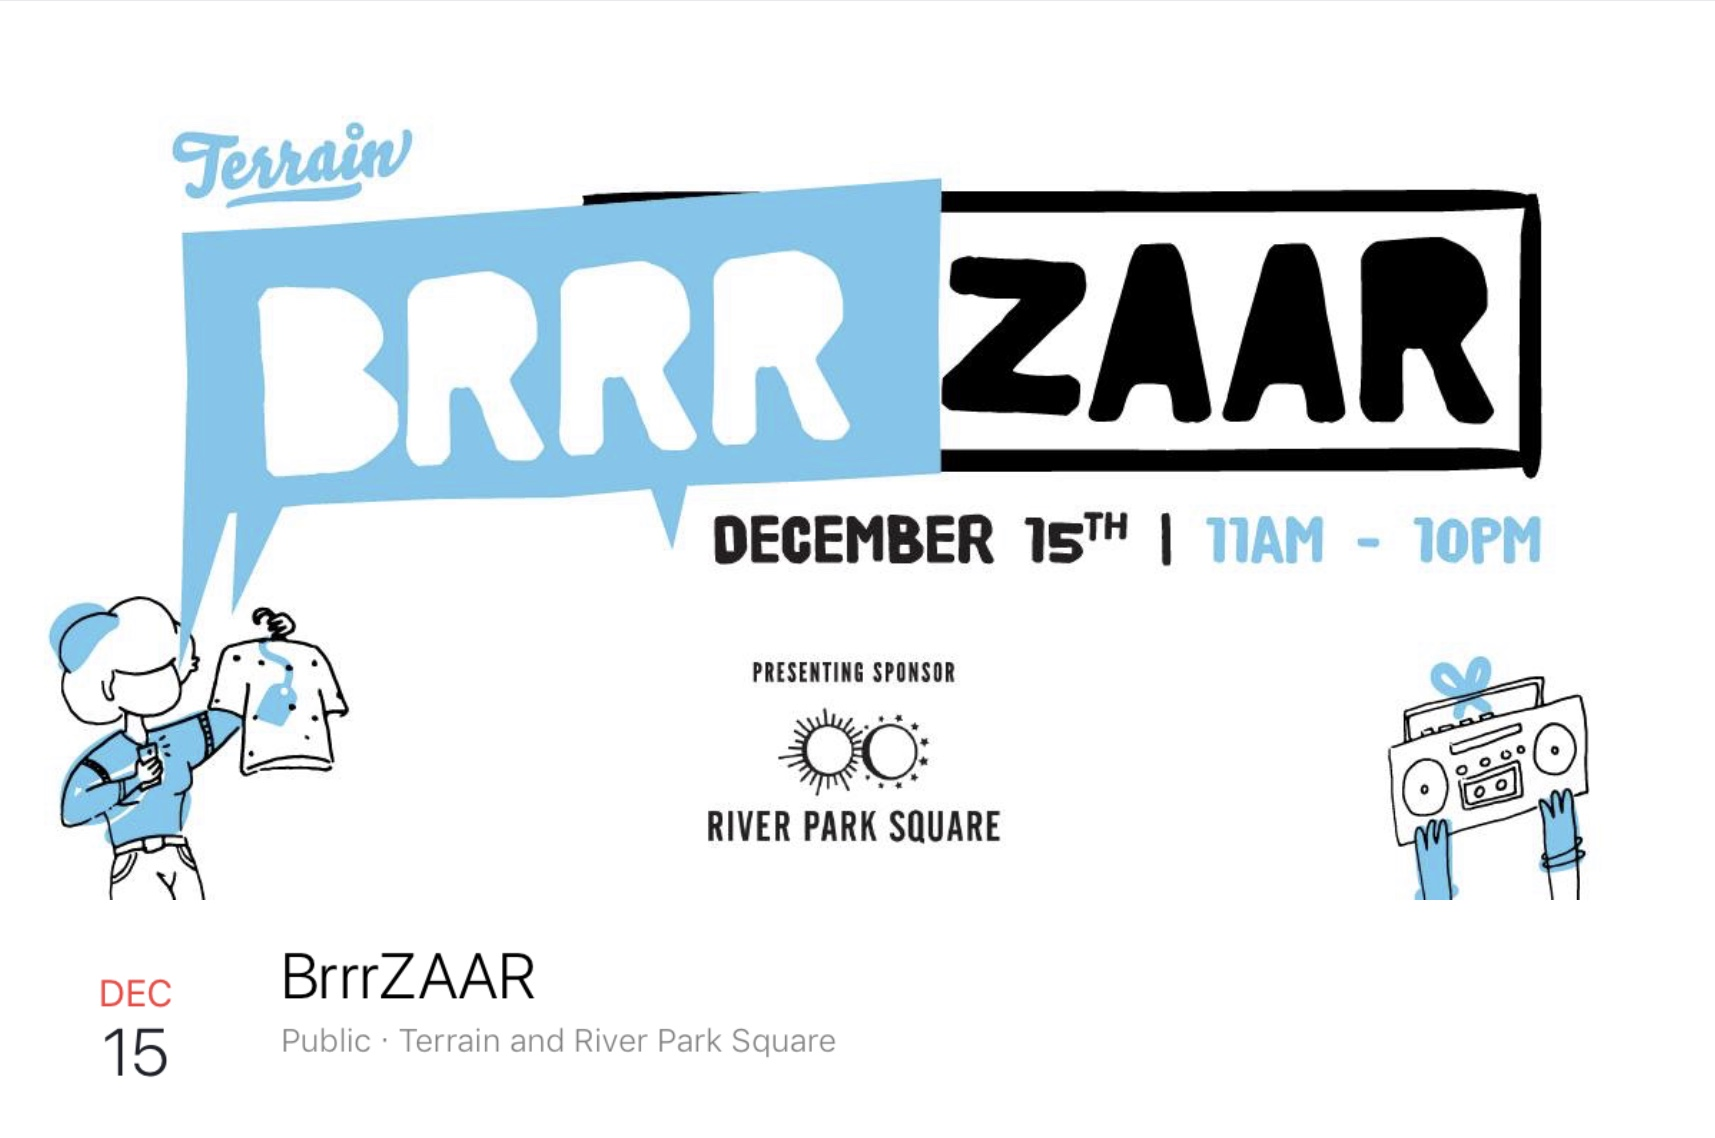 My last Holiday Show of the Year with Terrain's BrrrZaar! 11 am-10PM at Riverfront Park. I'll have a small handful of books if you didn't grab one during the Kickstarter. I've looked at the list of vendors participating and it is going to be such an awesome show! I may have to do a bit of shopping myself. I hope to see you there!